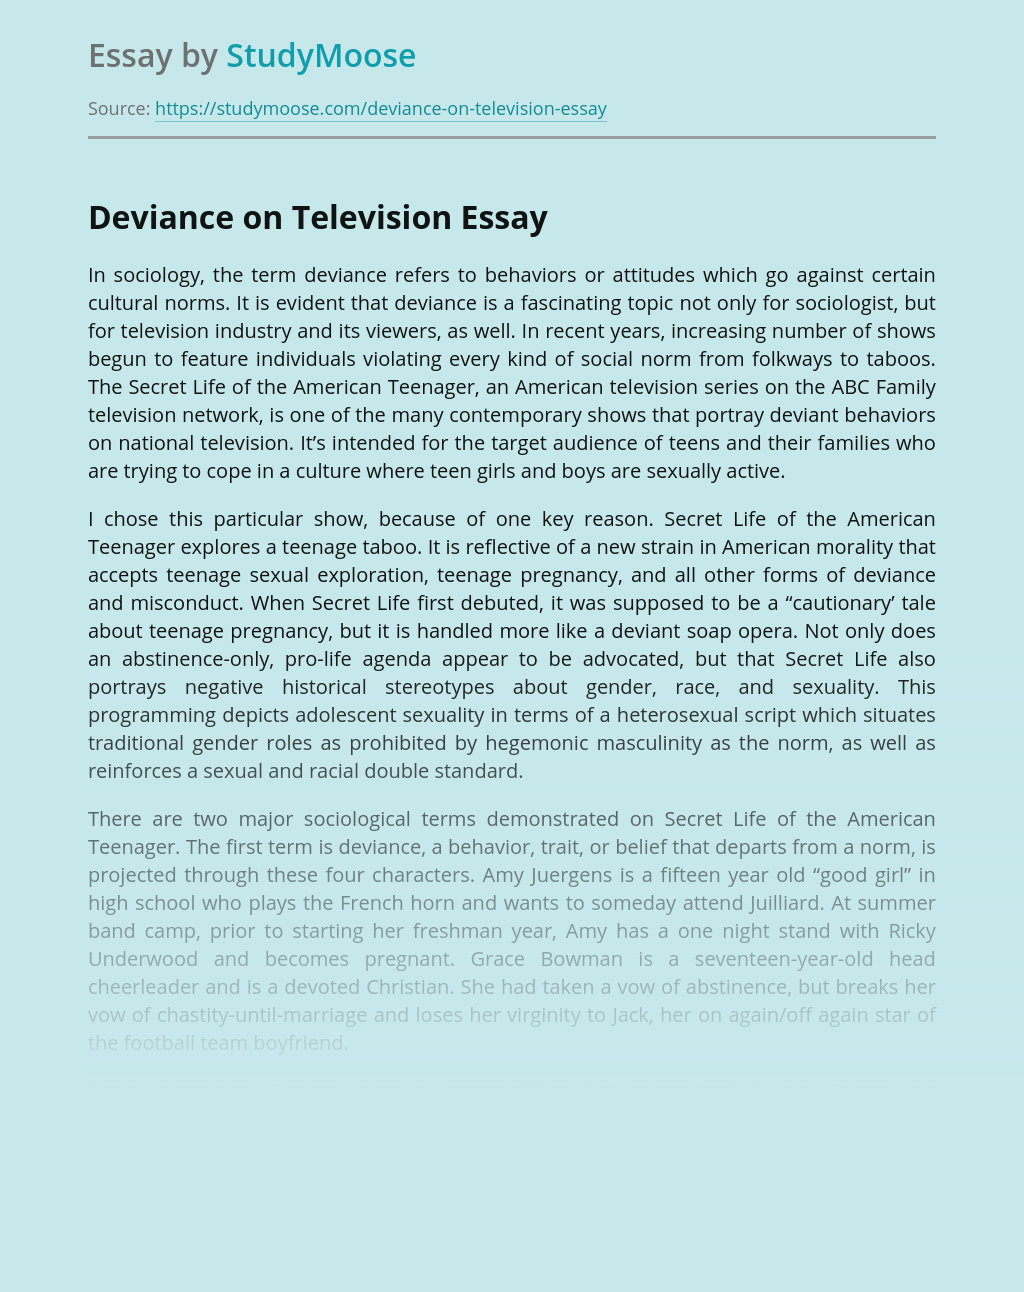 Deviance on Television